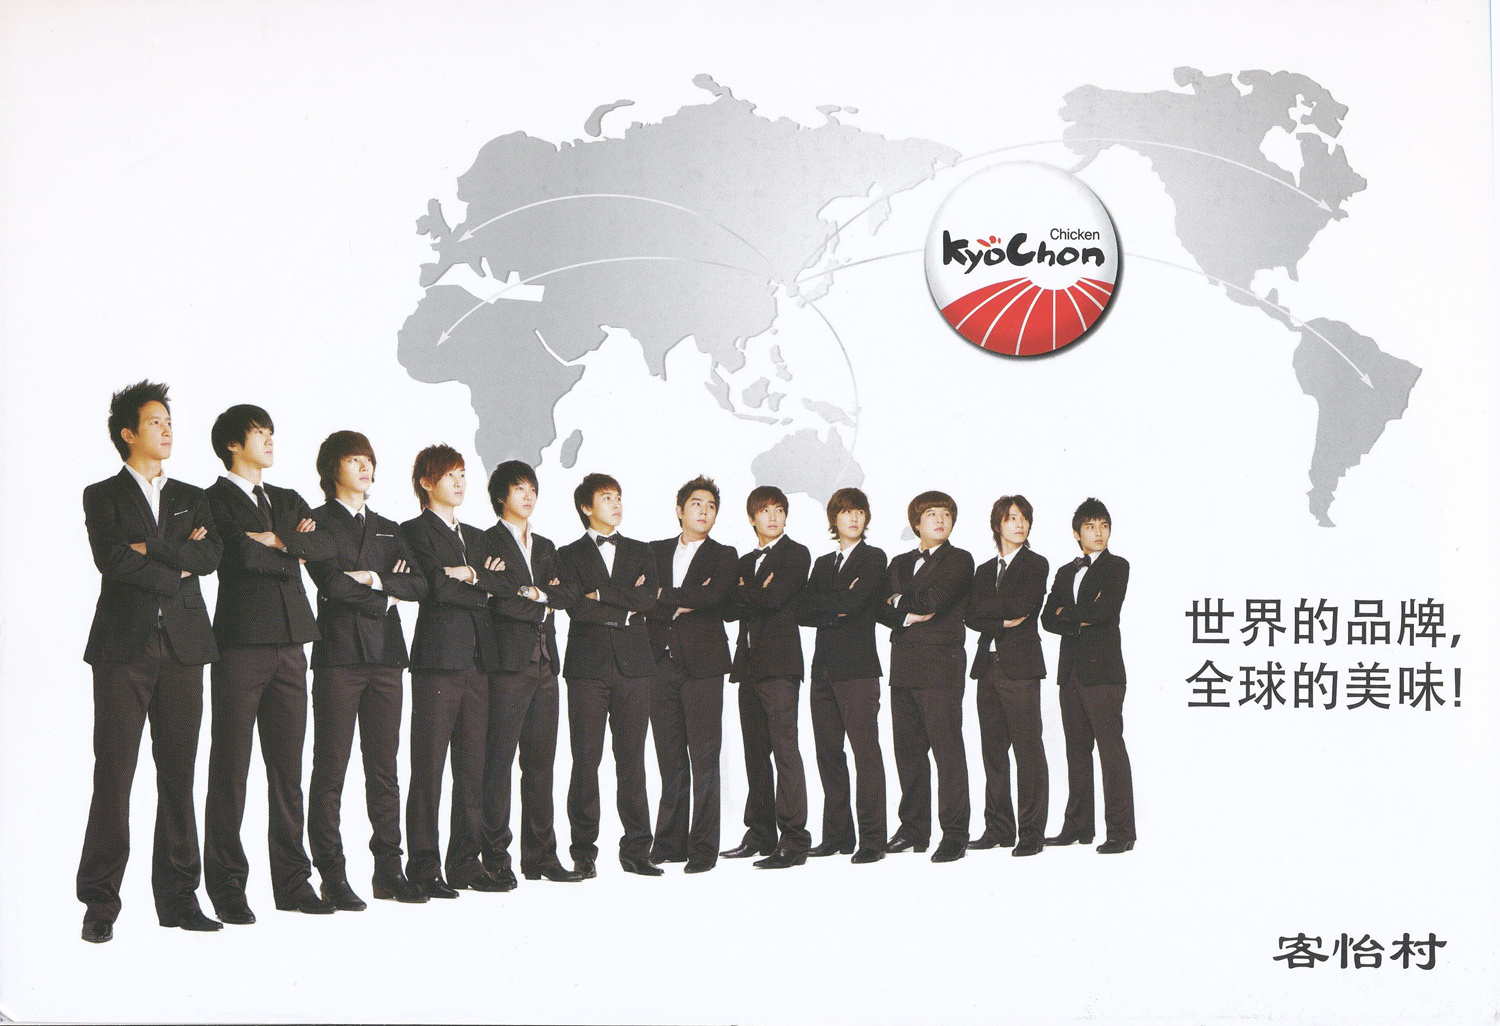 SuJu members are a bunch of chicken,أنيدرا